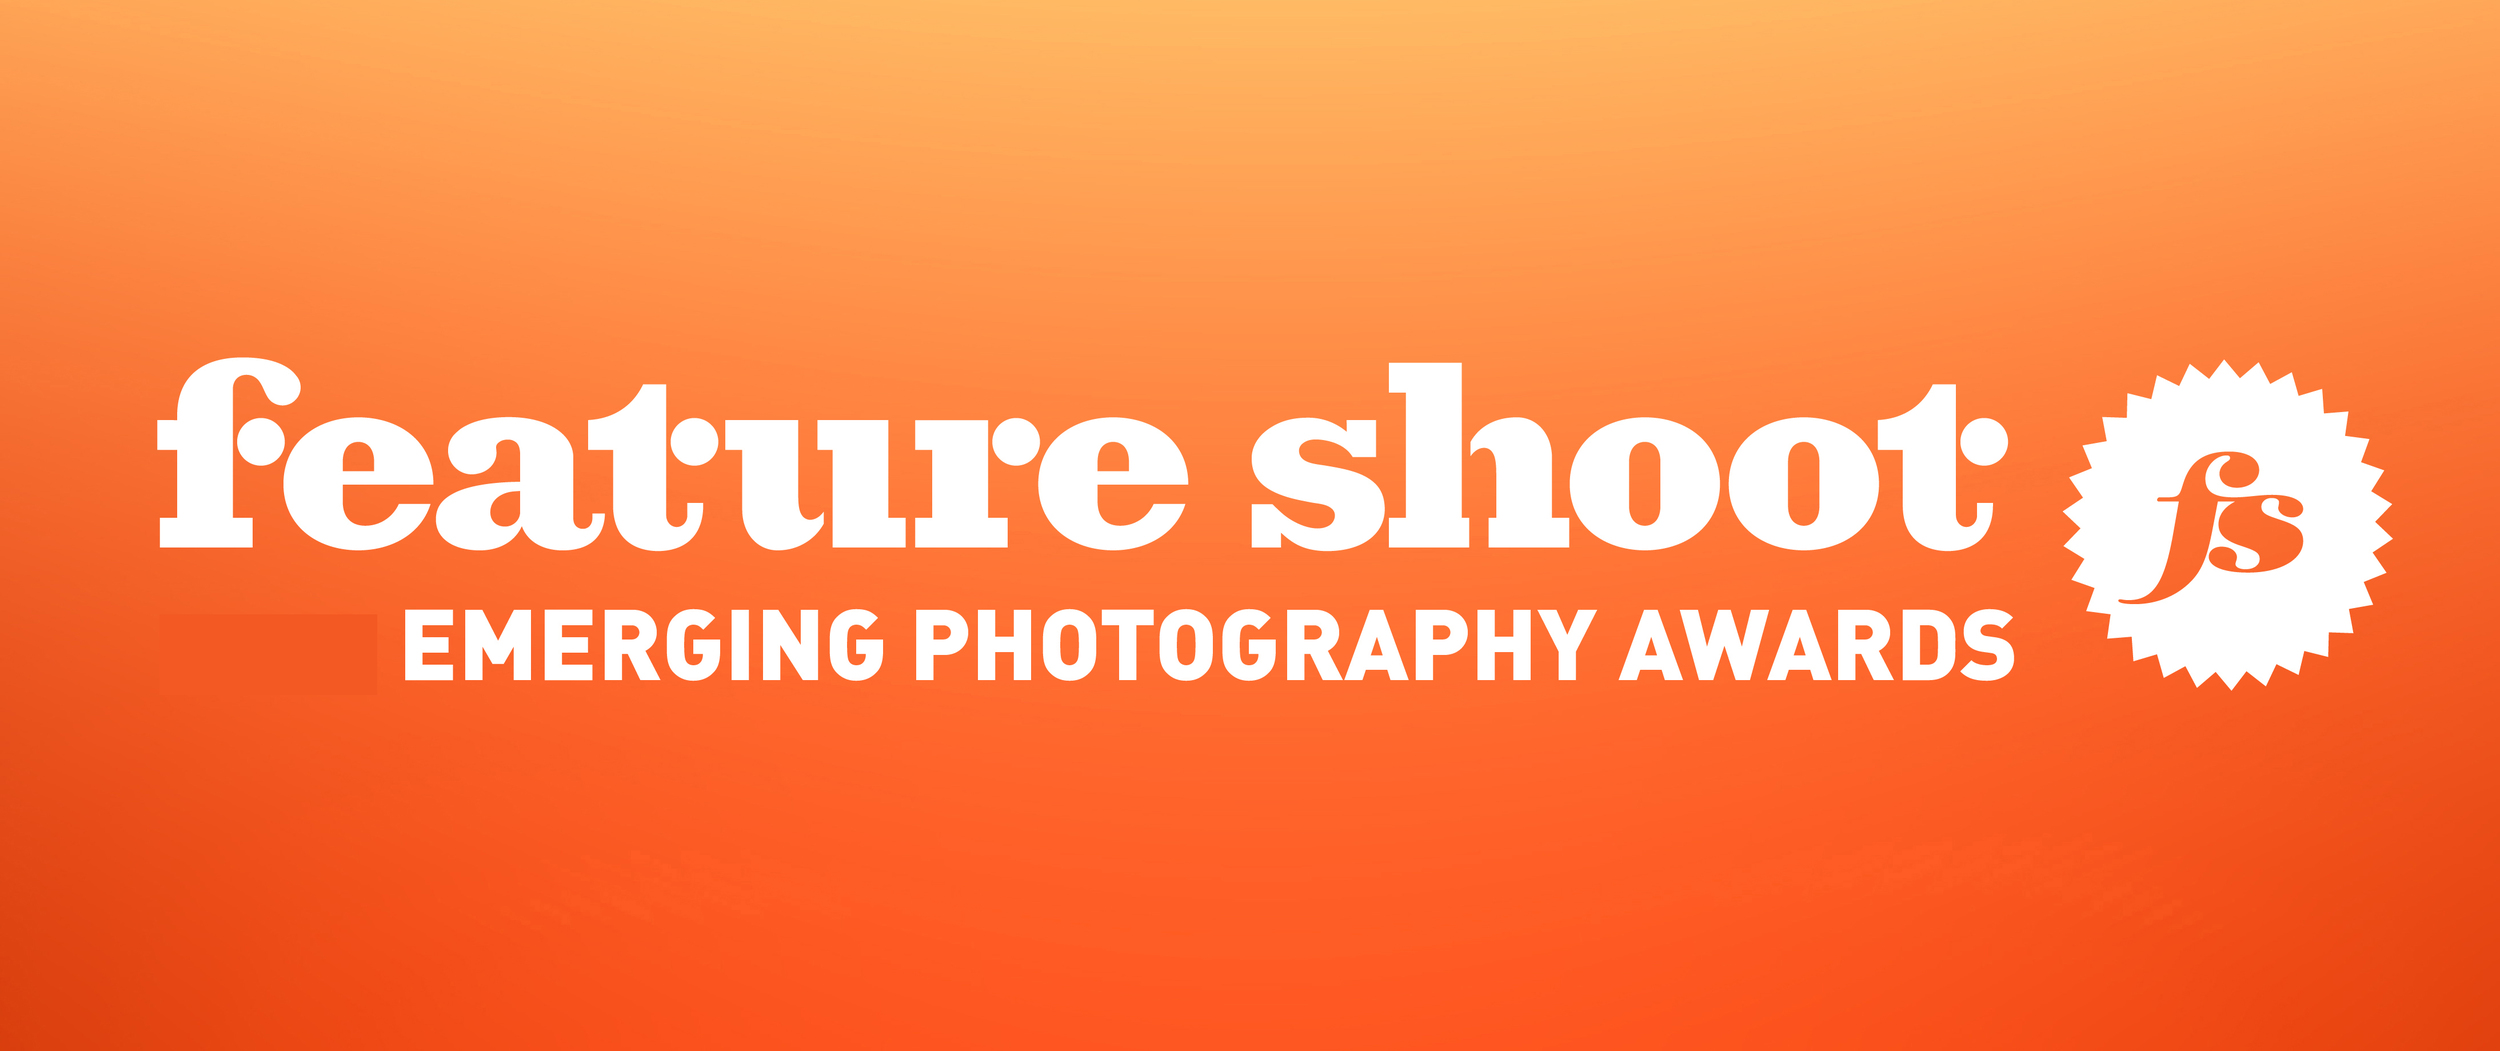 The Feature Shoot Emerging Photography Awards